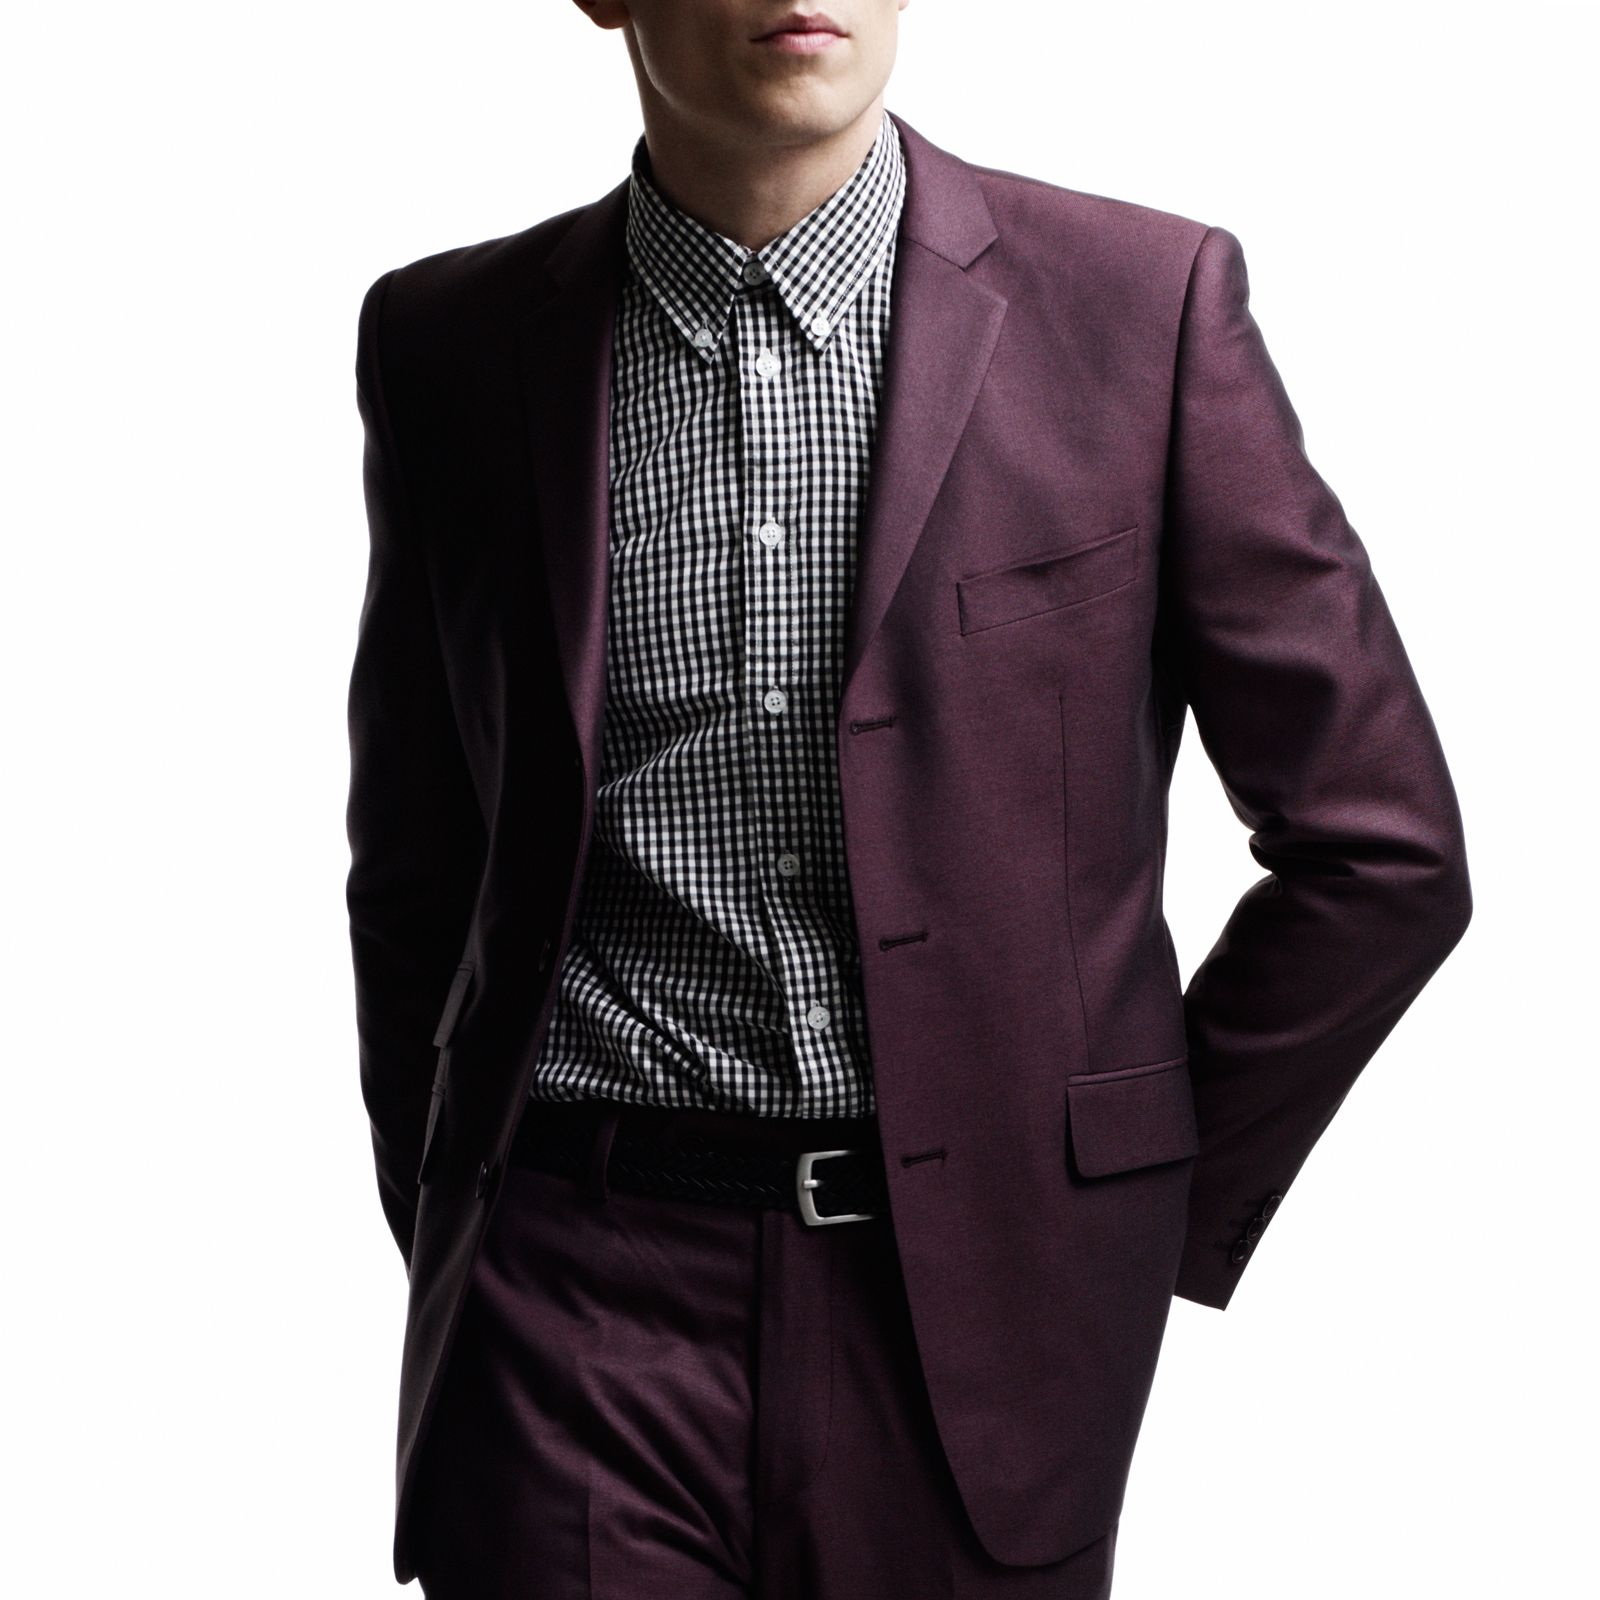 Suit Jackets For Men - JacketIn